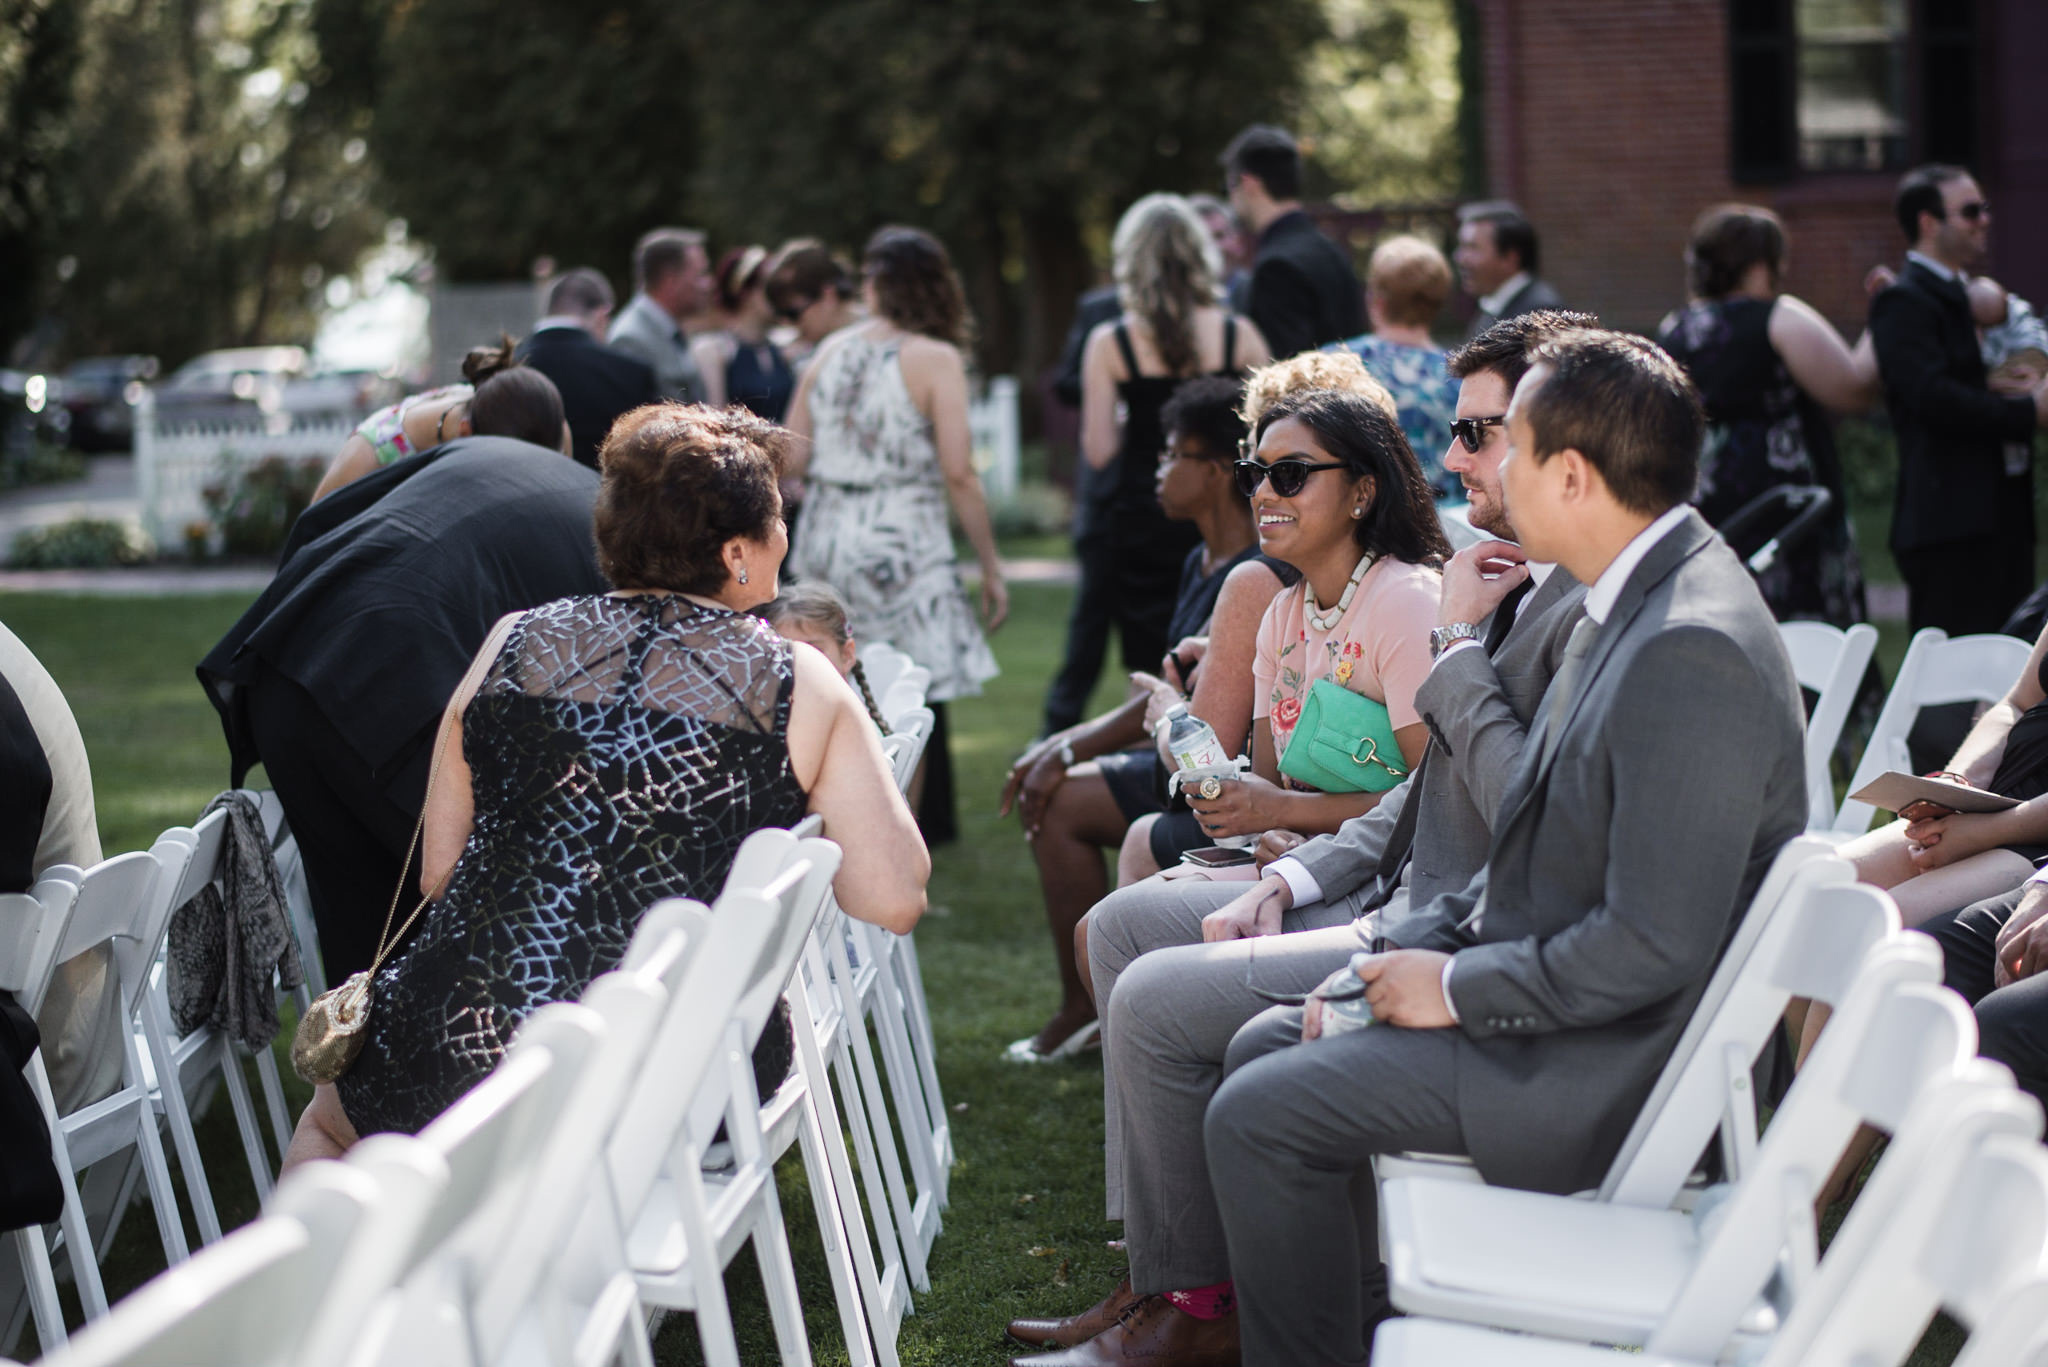 266-wedding-ceremony-penryn-park-outdoor-toronto-photographer.jpg